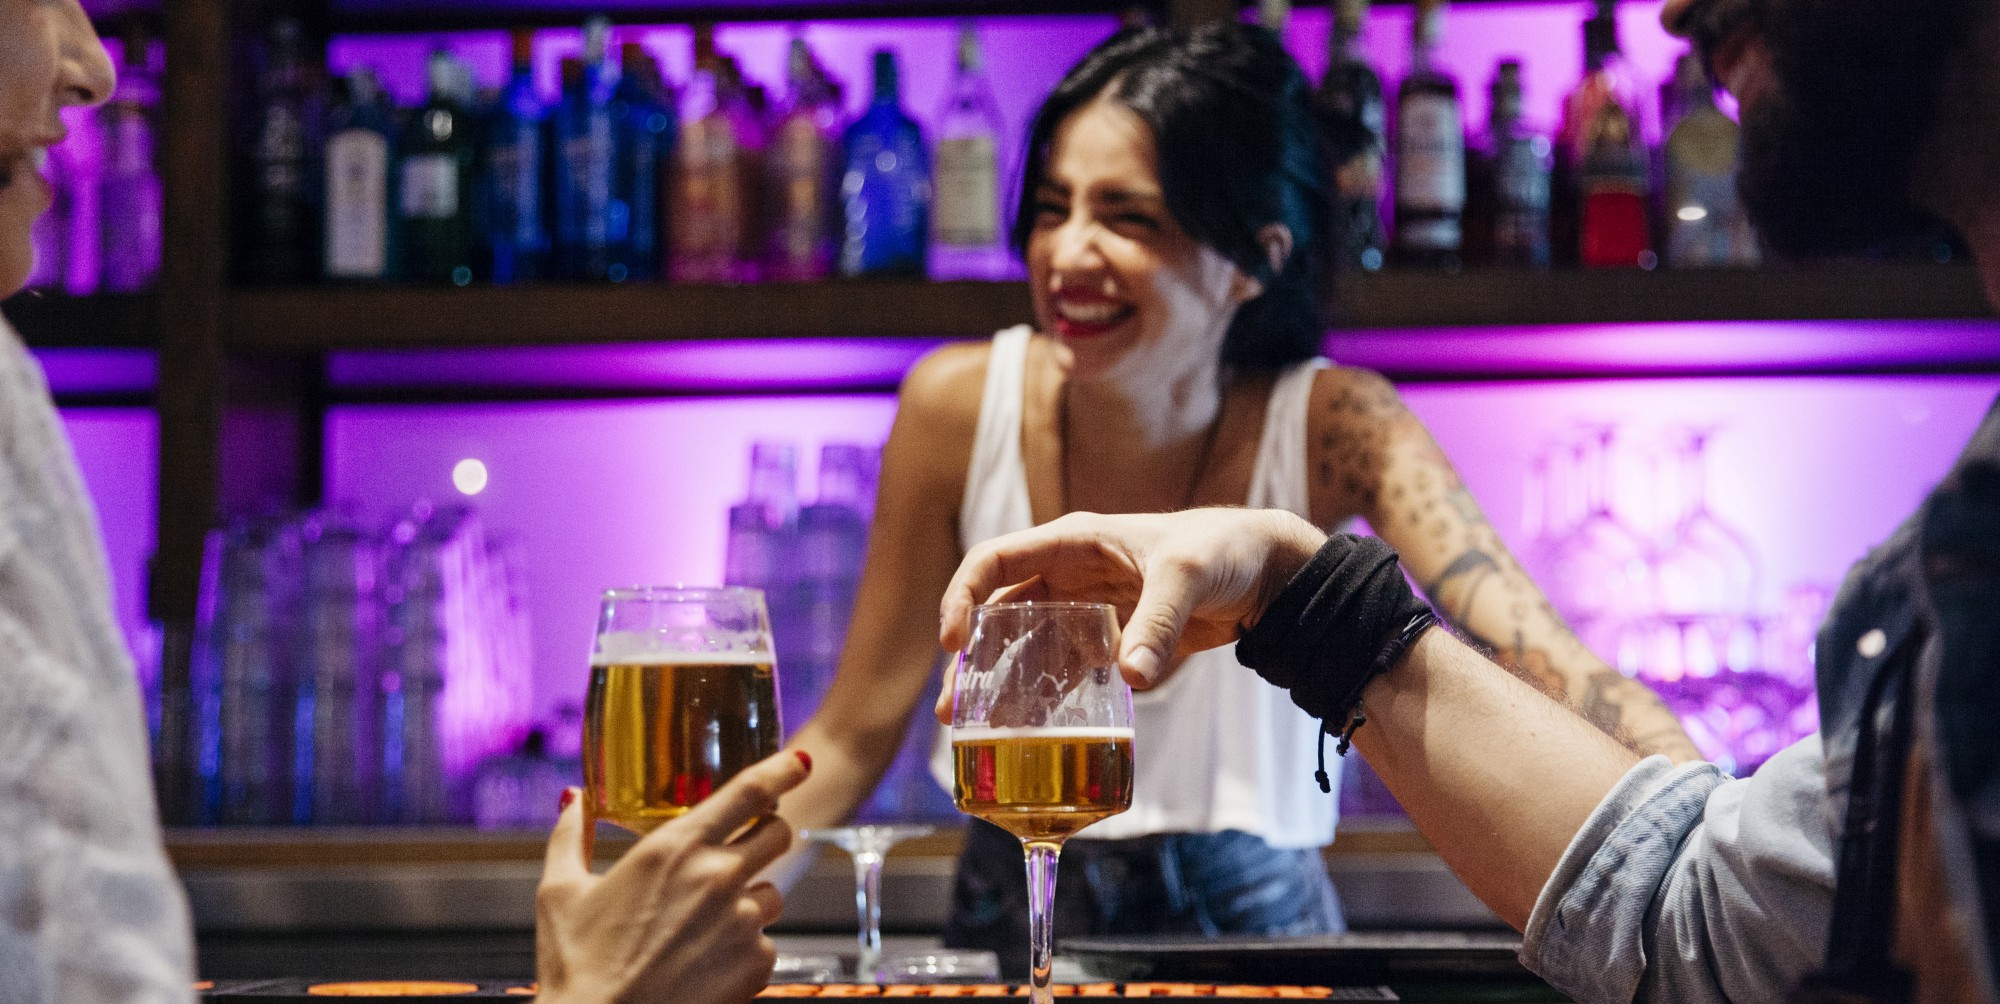 how to become a bartender 5 tips to land a bartender job